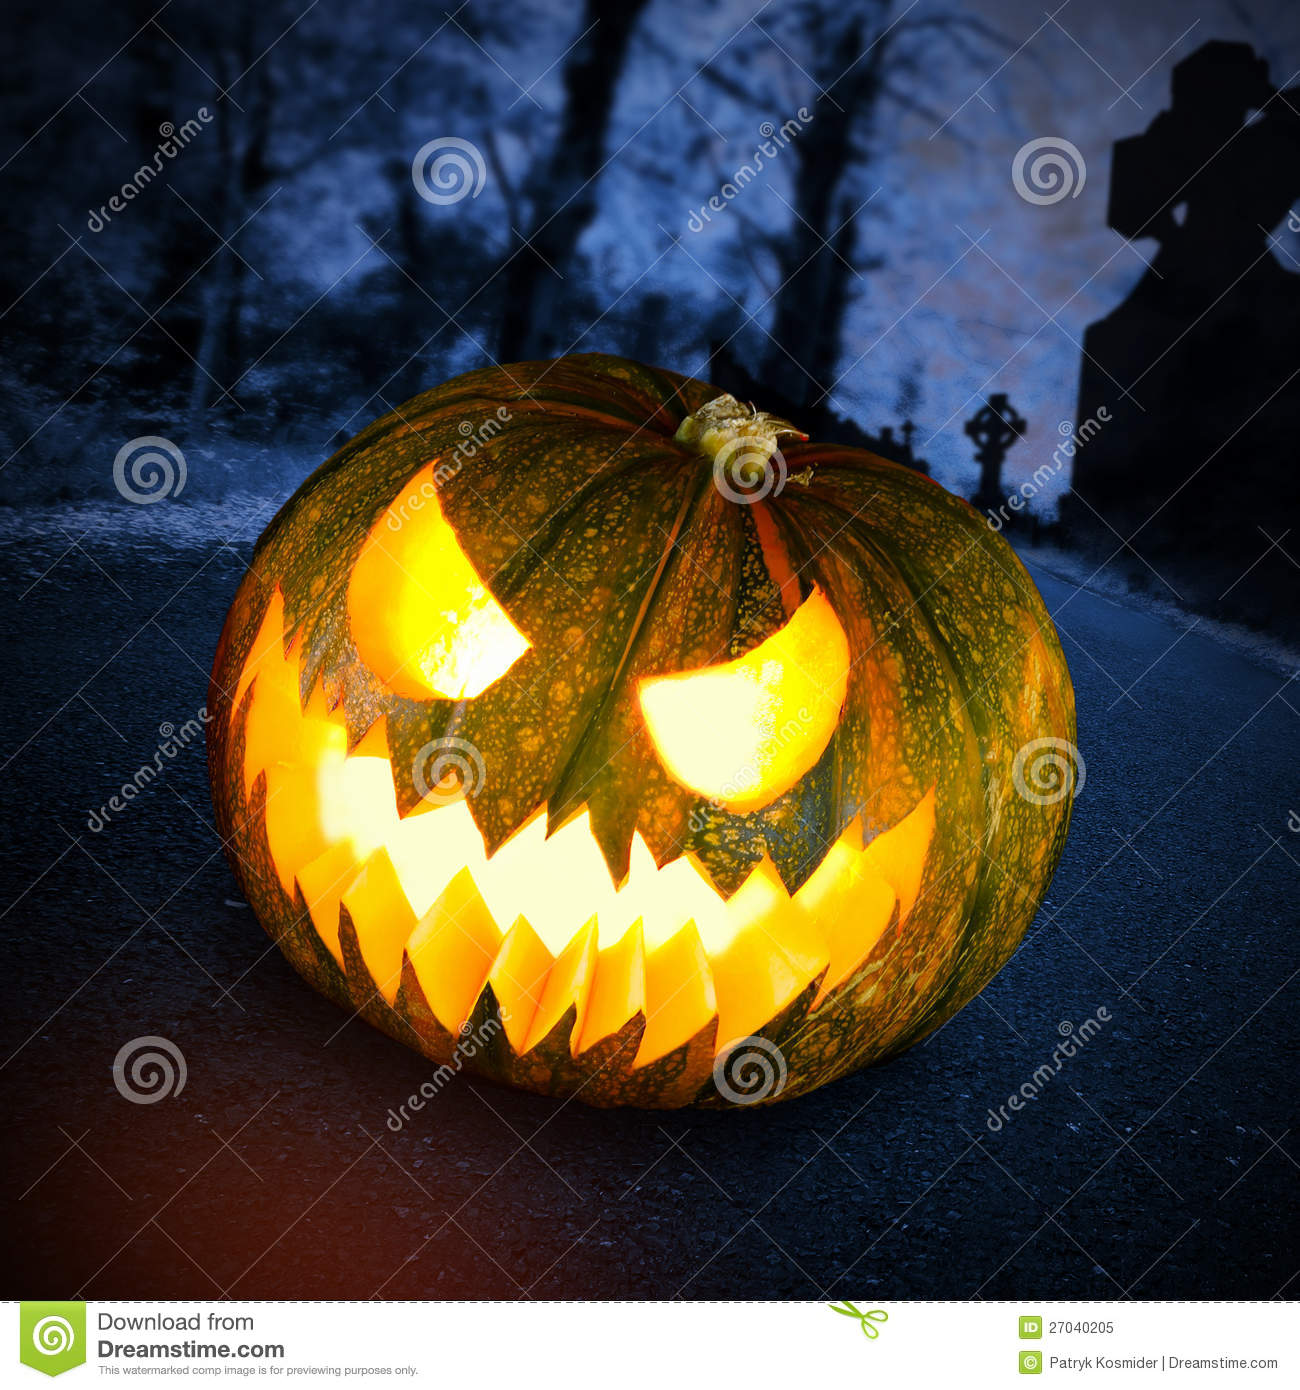 Scary Halloween Pumpkin In Dark Forest Stock Image - Image of ...